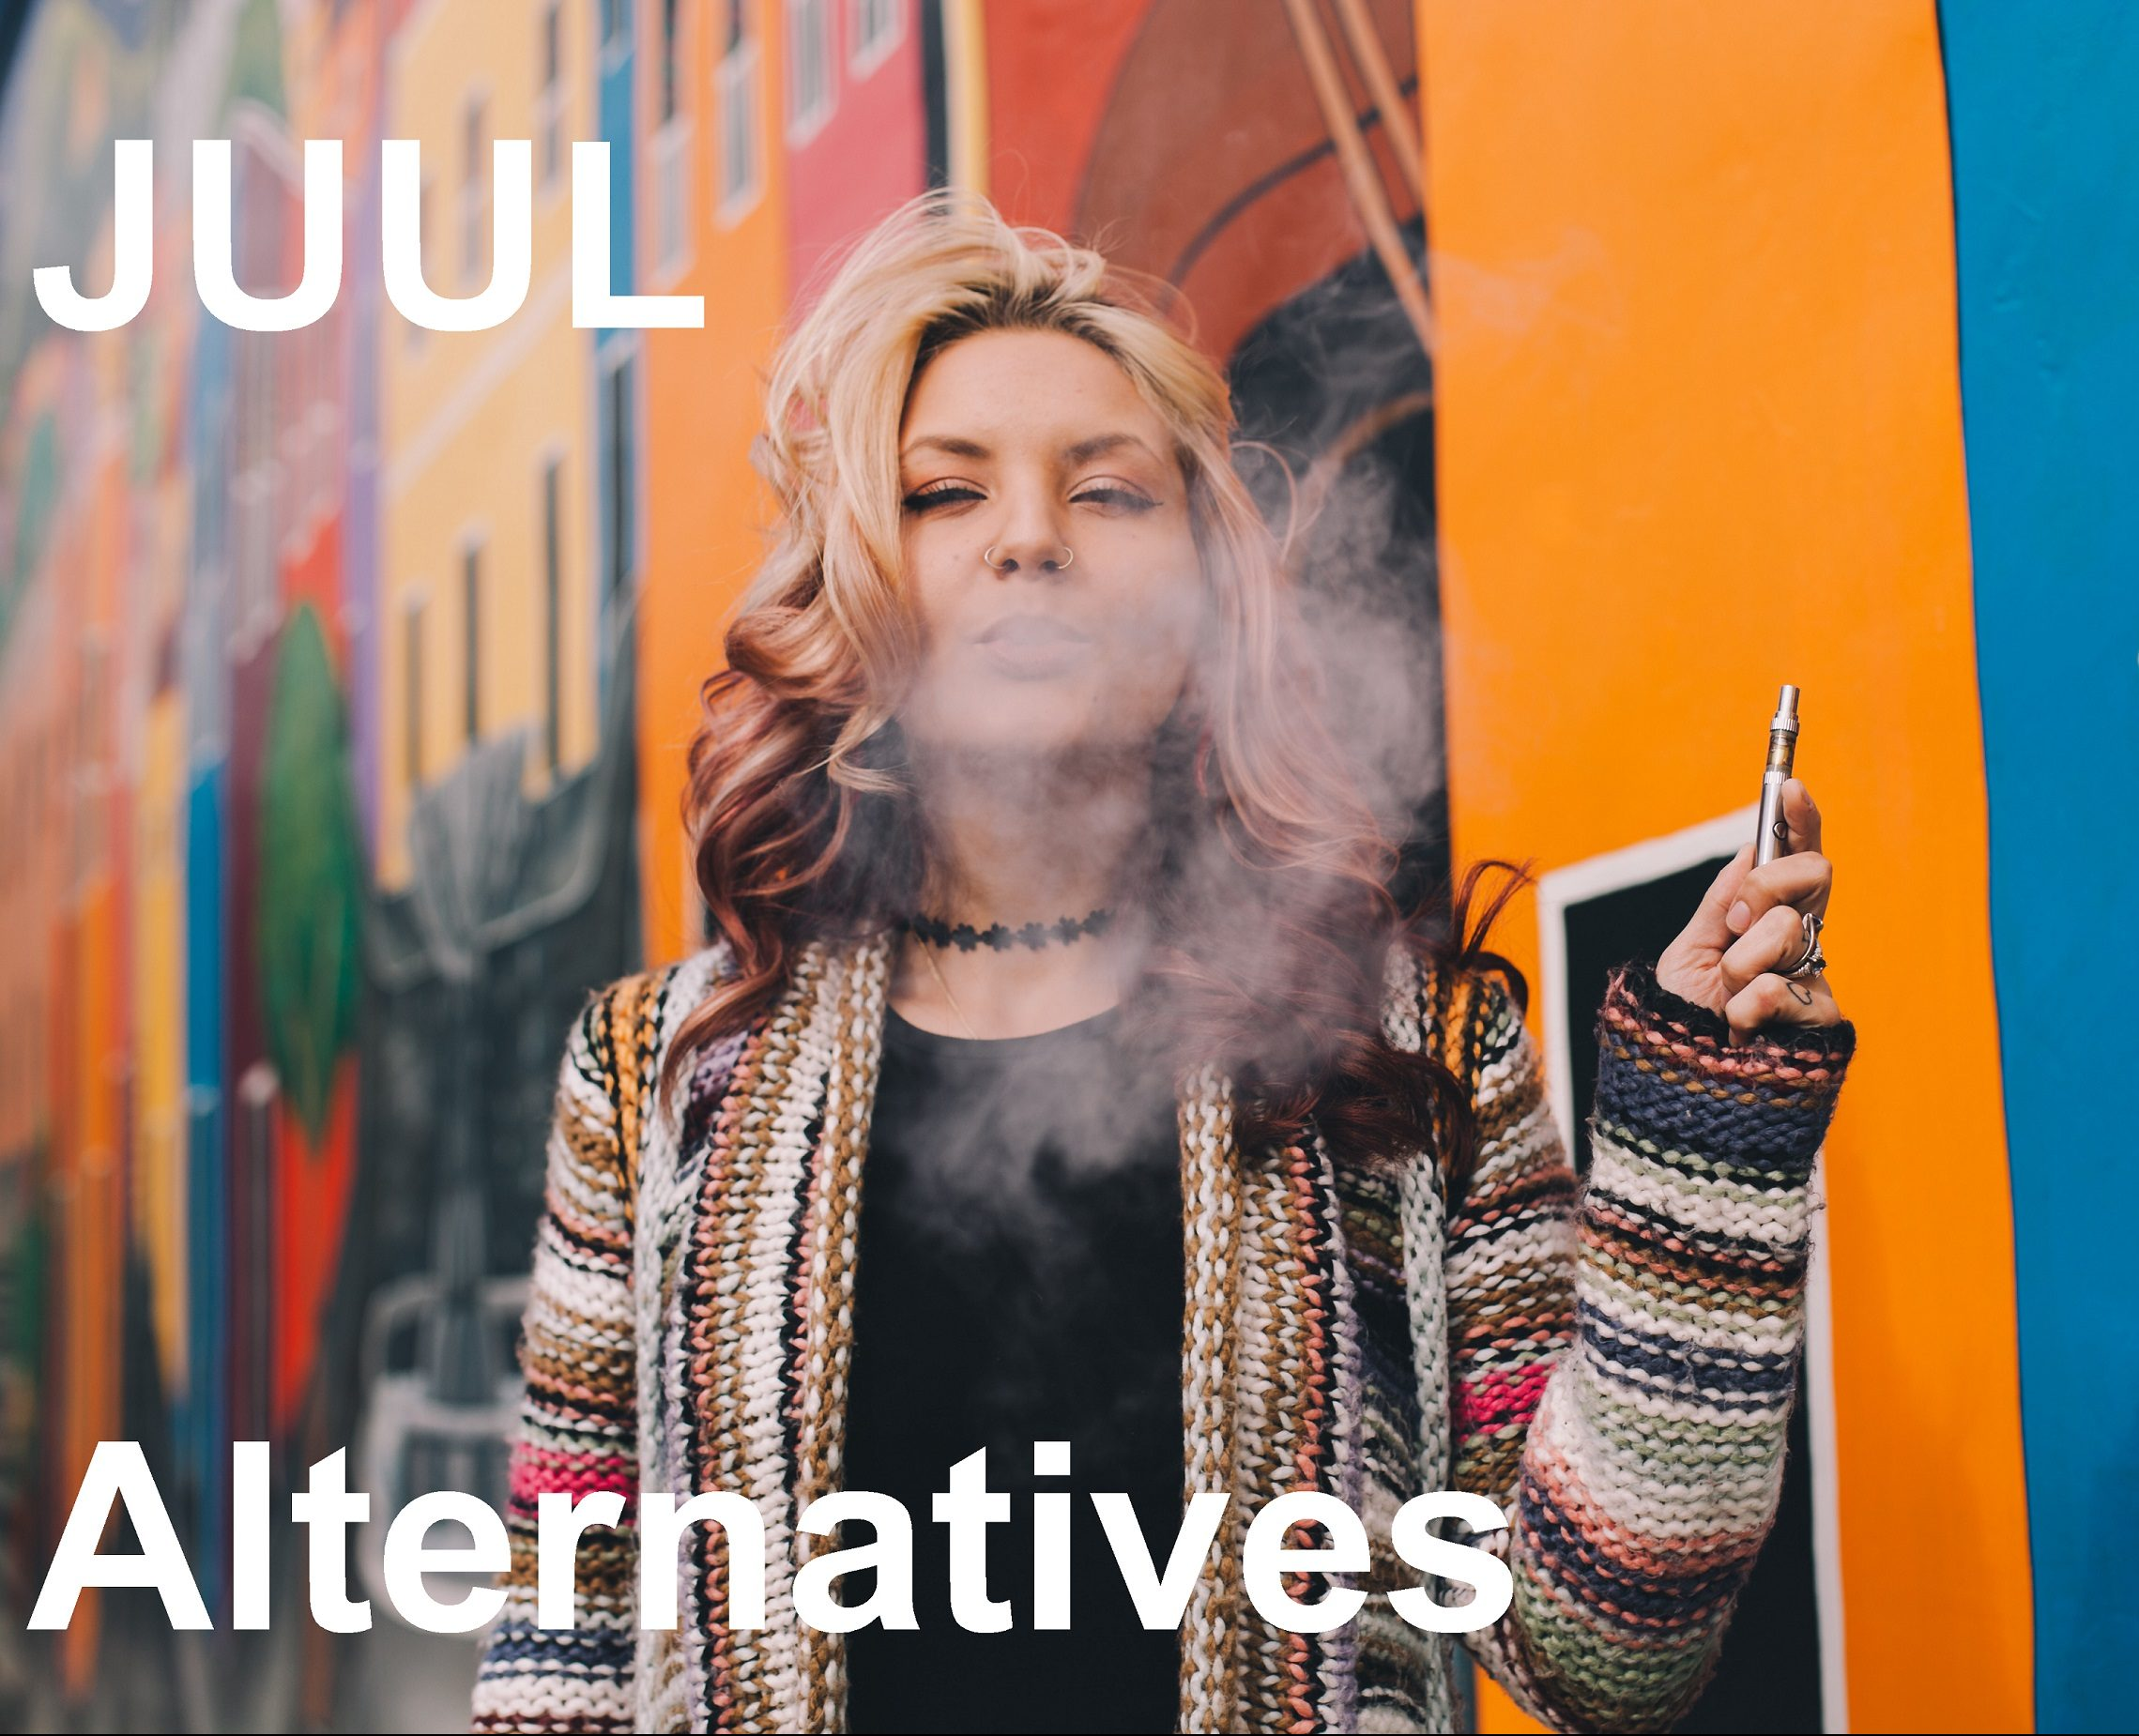 juul alternatives — safe and cool